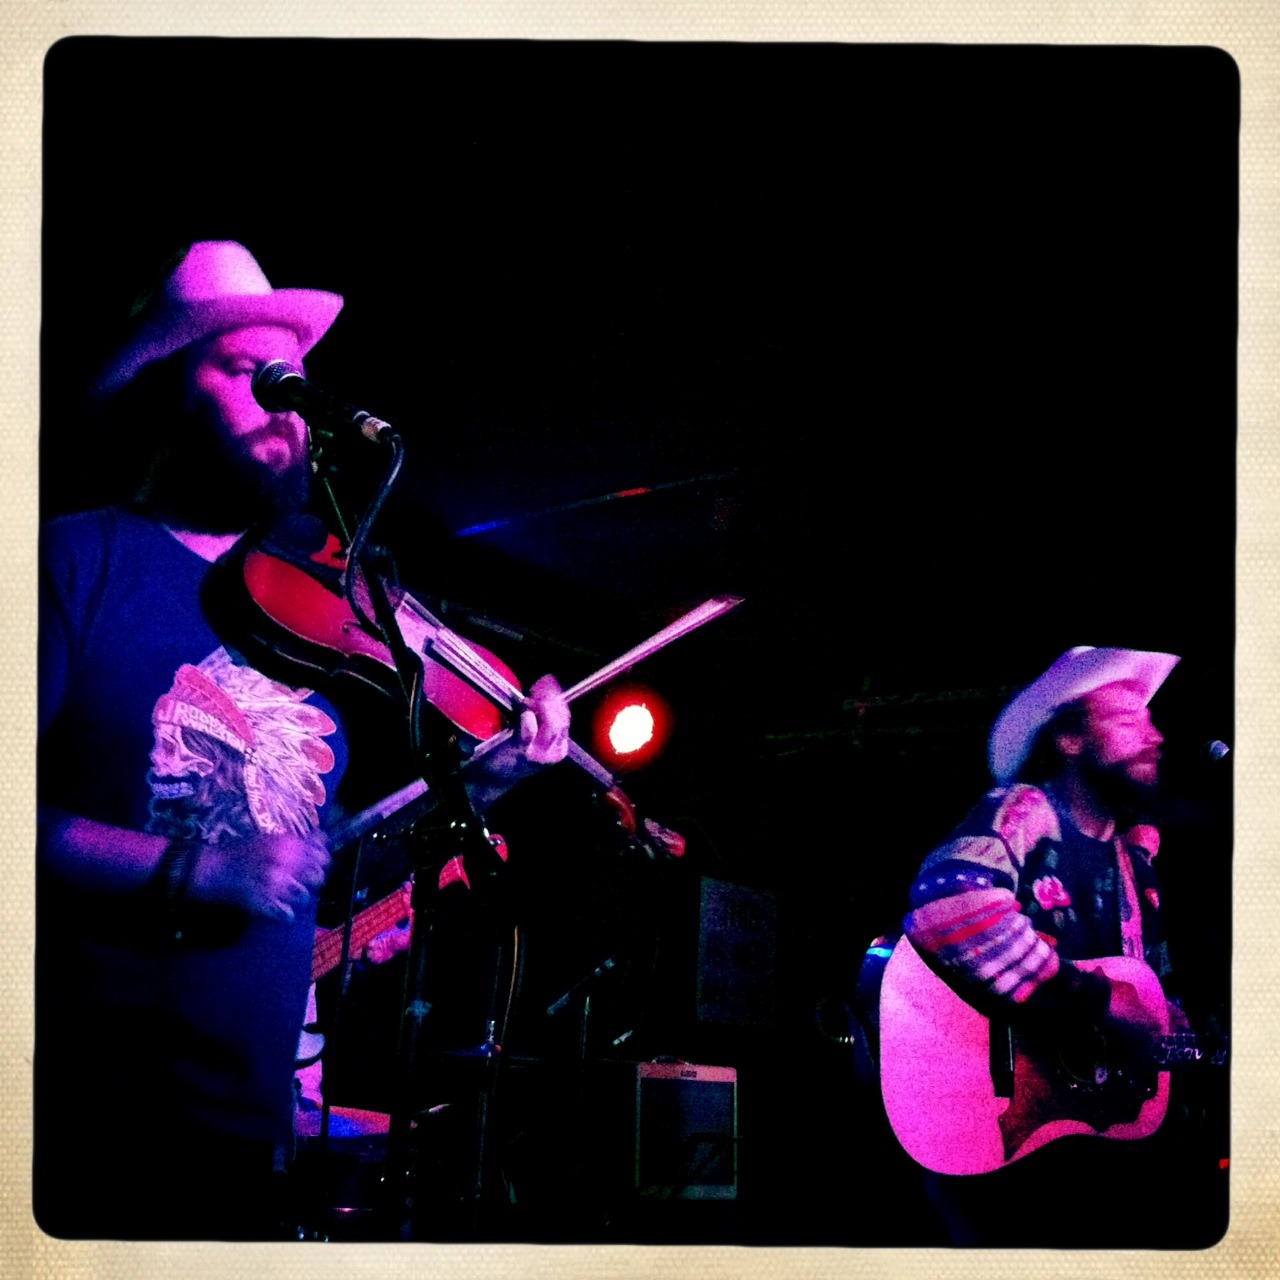 Jonny Corndawg and fiddle player Josh Headley!  Wish I had a better picture of Jonny's sweeter. Amazing show at Mercury Lounge!